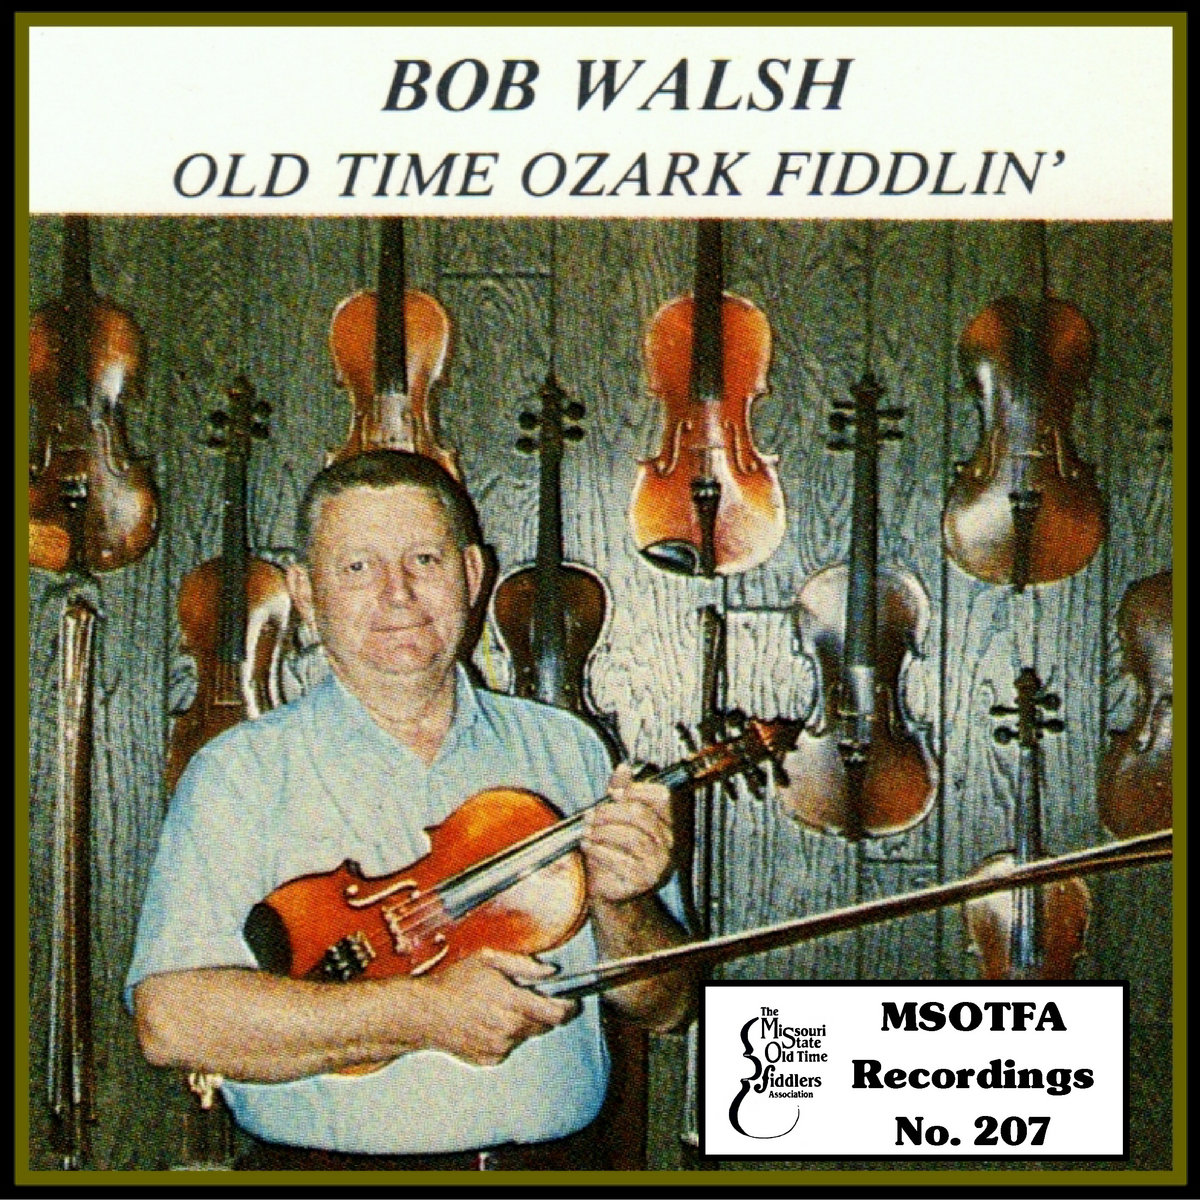 Waltz of the Ozarks | Missouri State Old Time Fiddlers Association